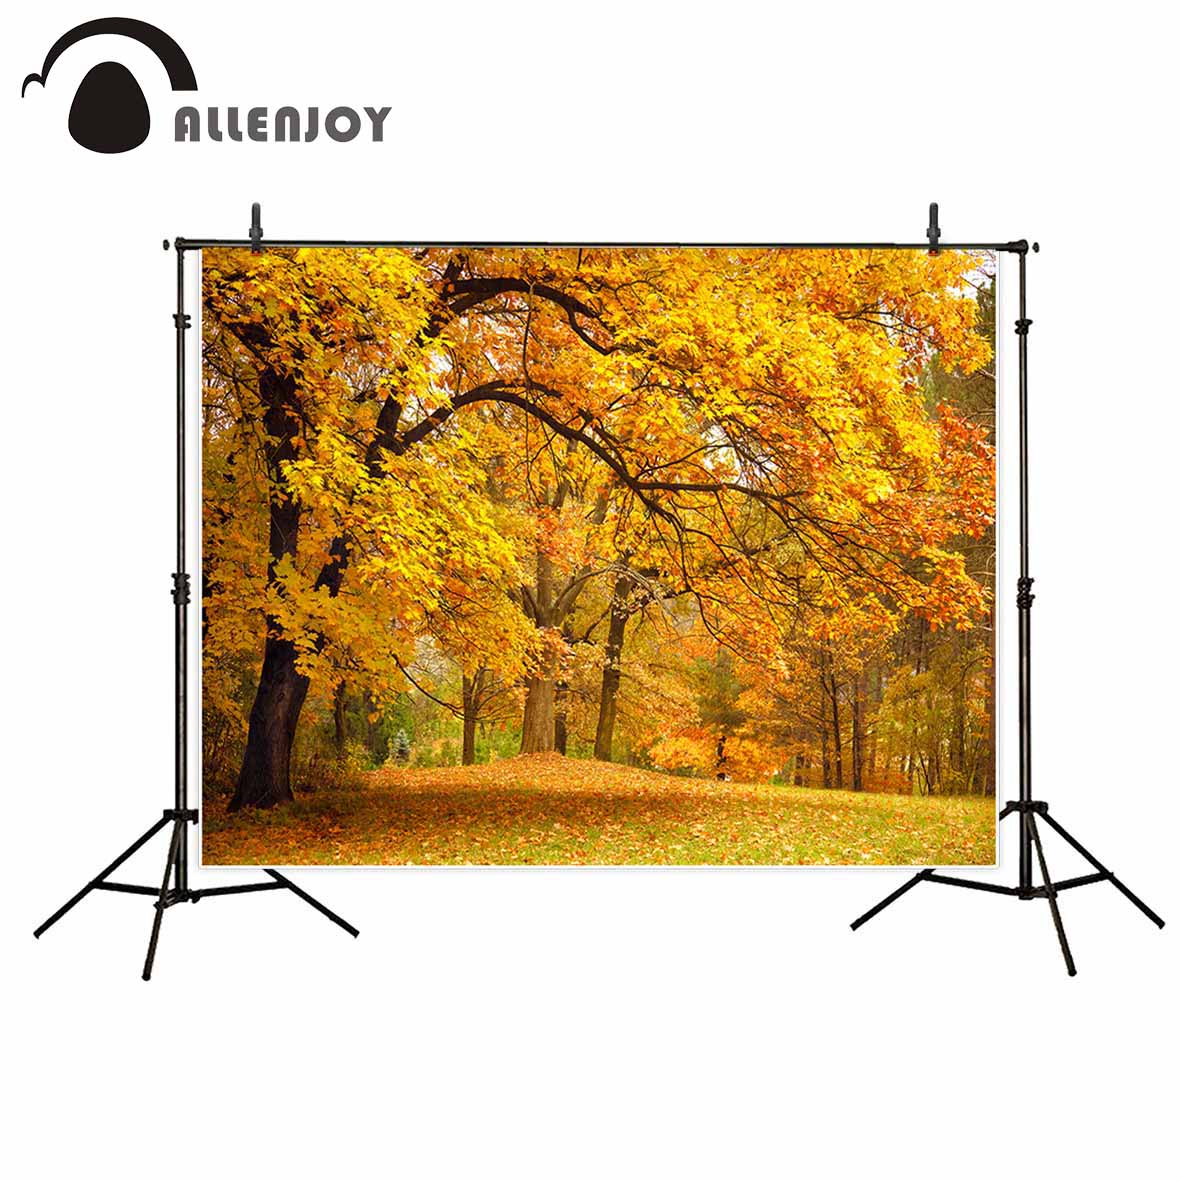 Allenjoy vintage photographic background Autumn forest leaves natural landscape fantasy backdrop photography photocall props